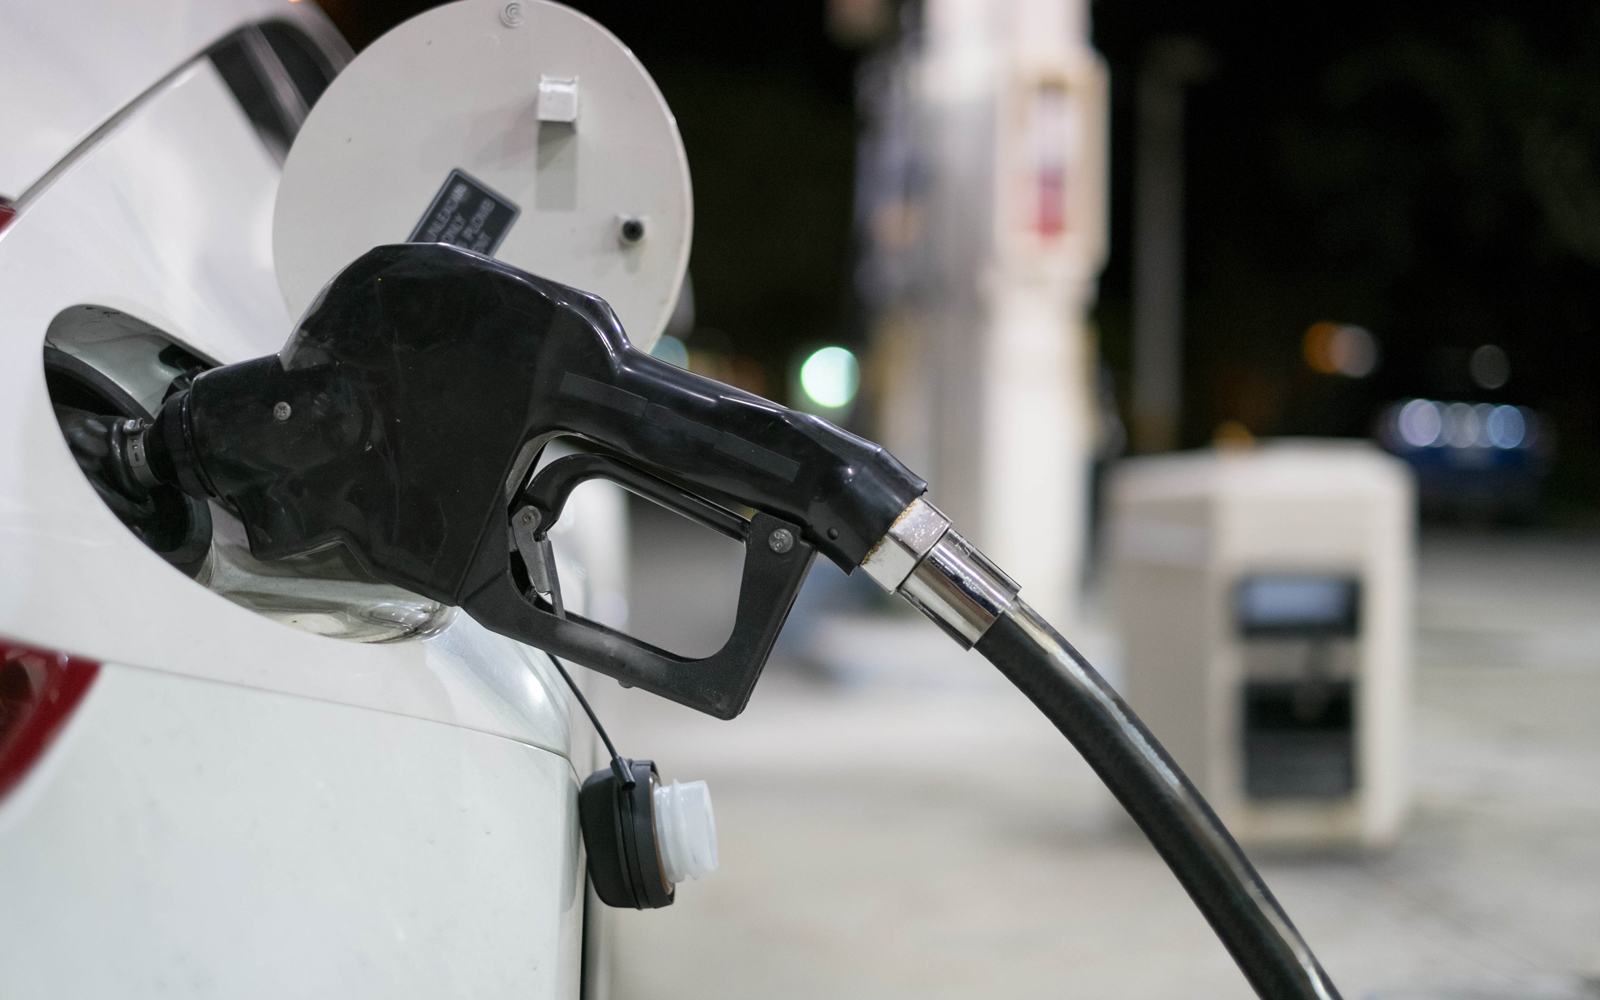 Gas Prices: Cost Rising and Will Continue, Report Says